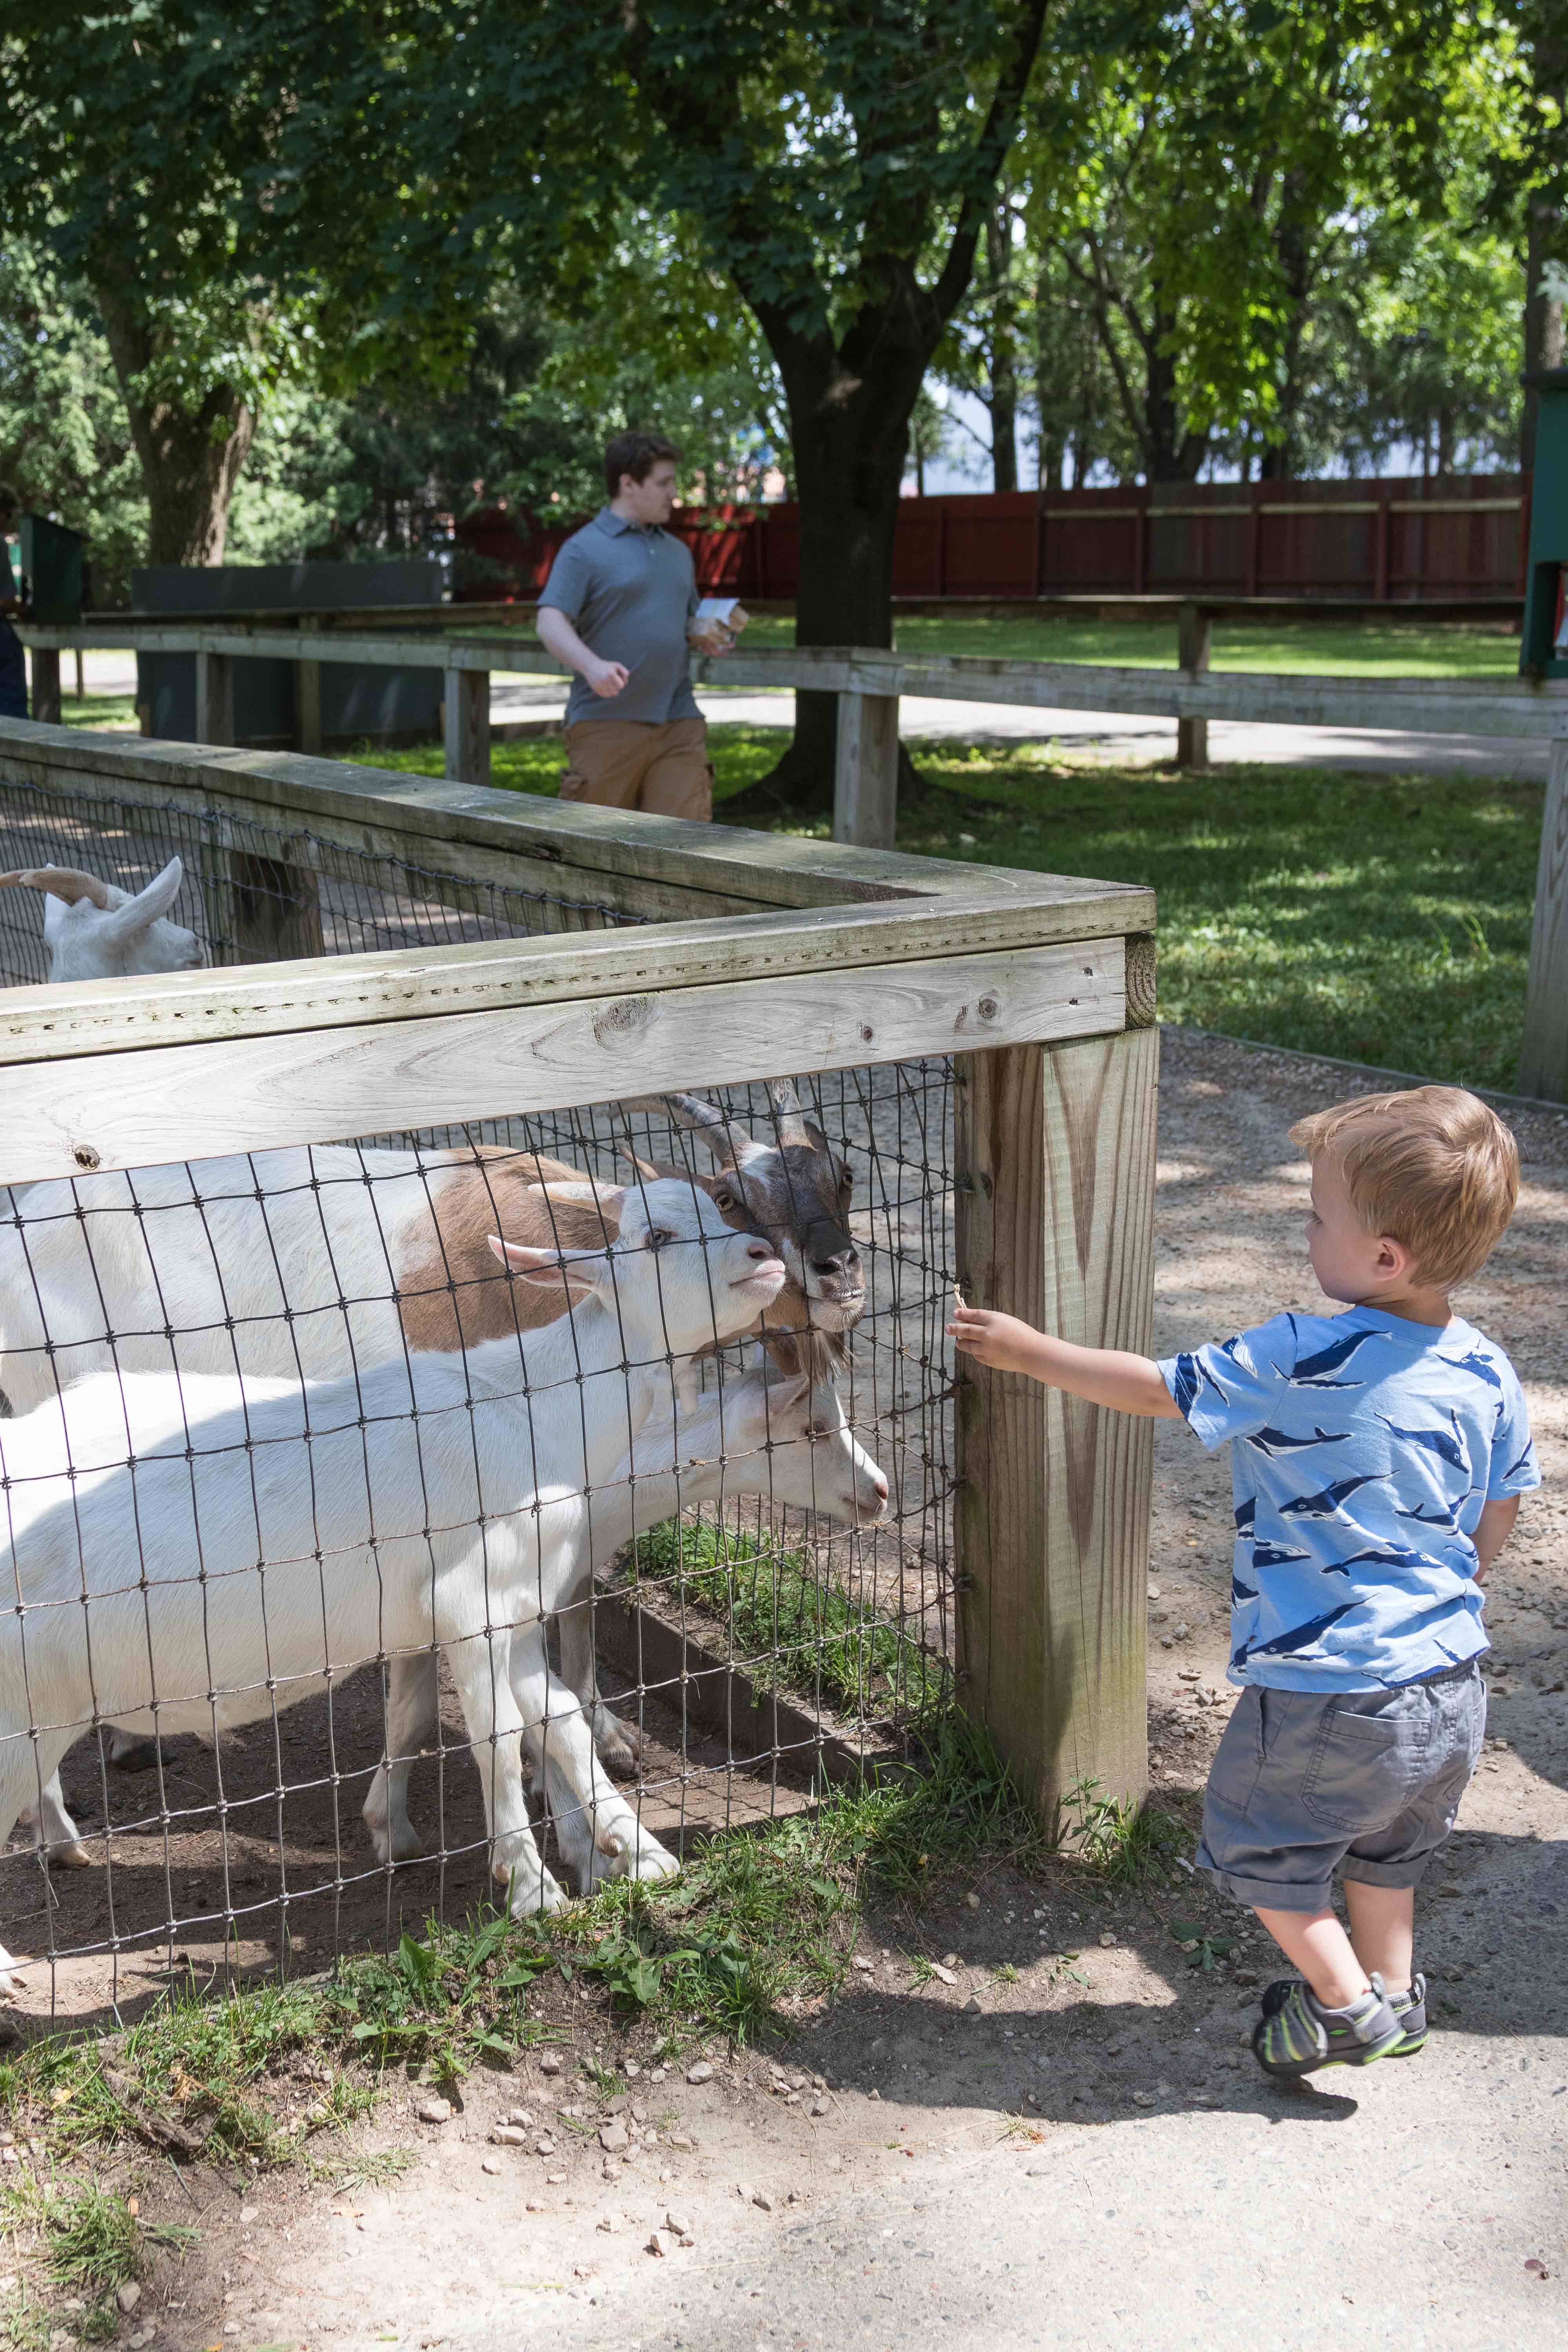 Feeding the goats at the Wisconsin Deer Park